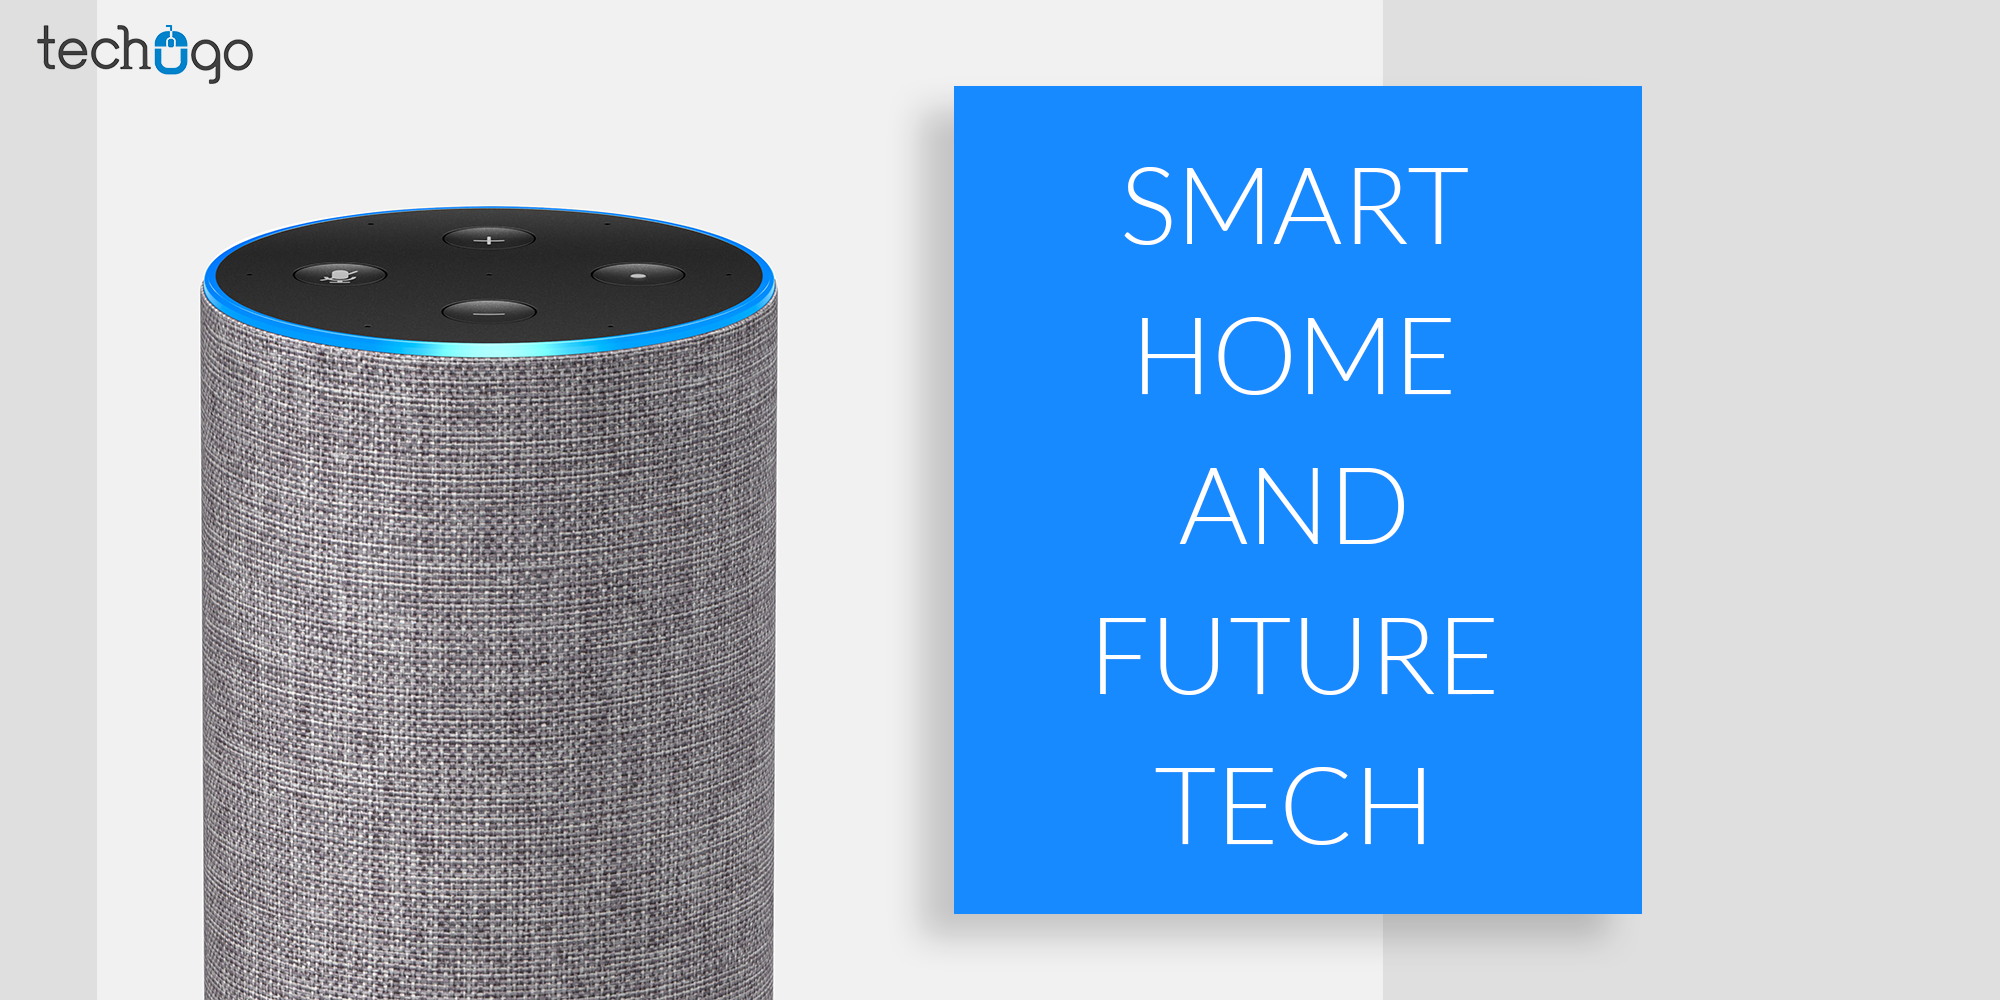 SMART HOME AND FUTURE TECH